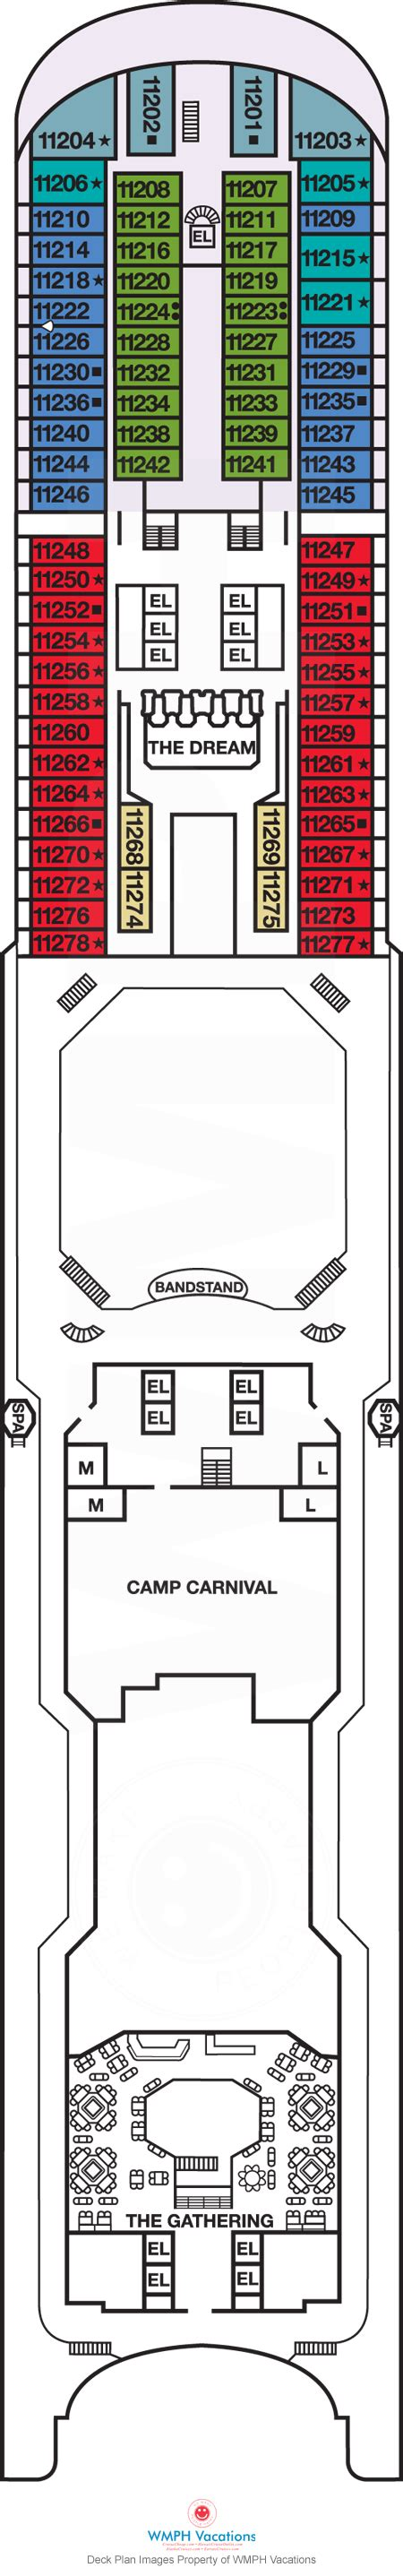 carnival dream floor plan carnival dream deck plans panorama what s on panorama